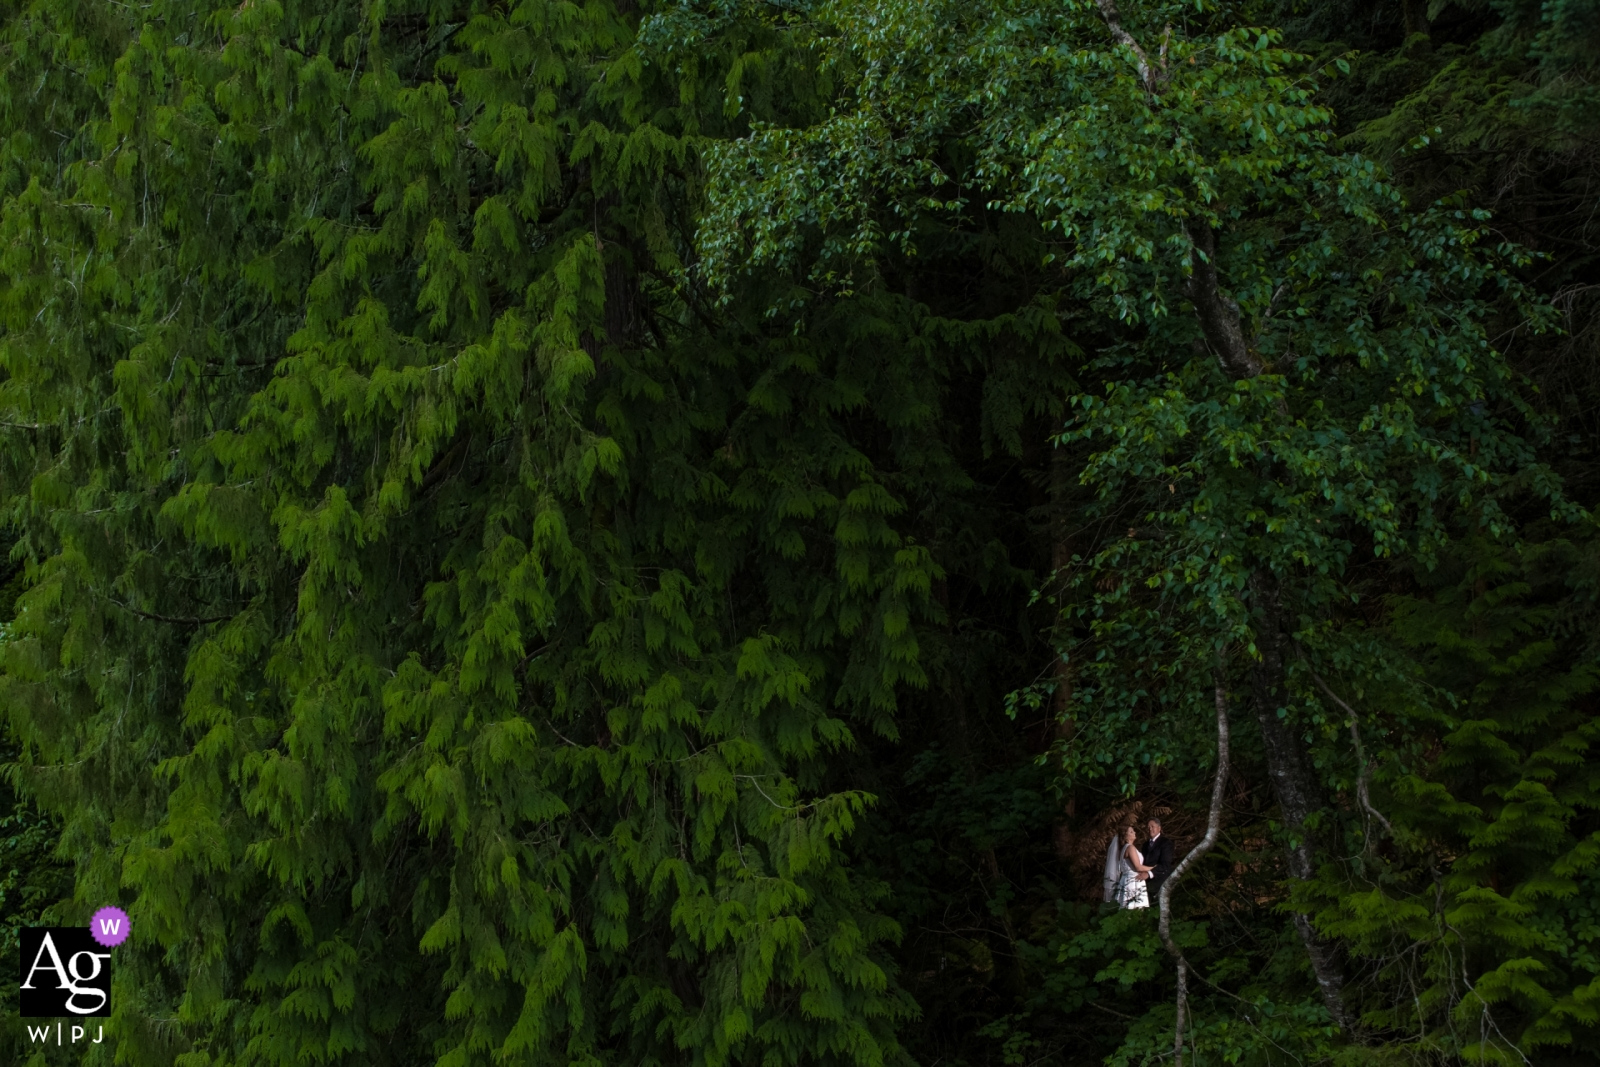 This British Columbia couple almost get lost in the thick forest during their outdoor wedding photo